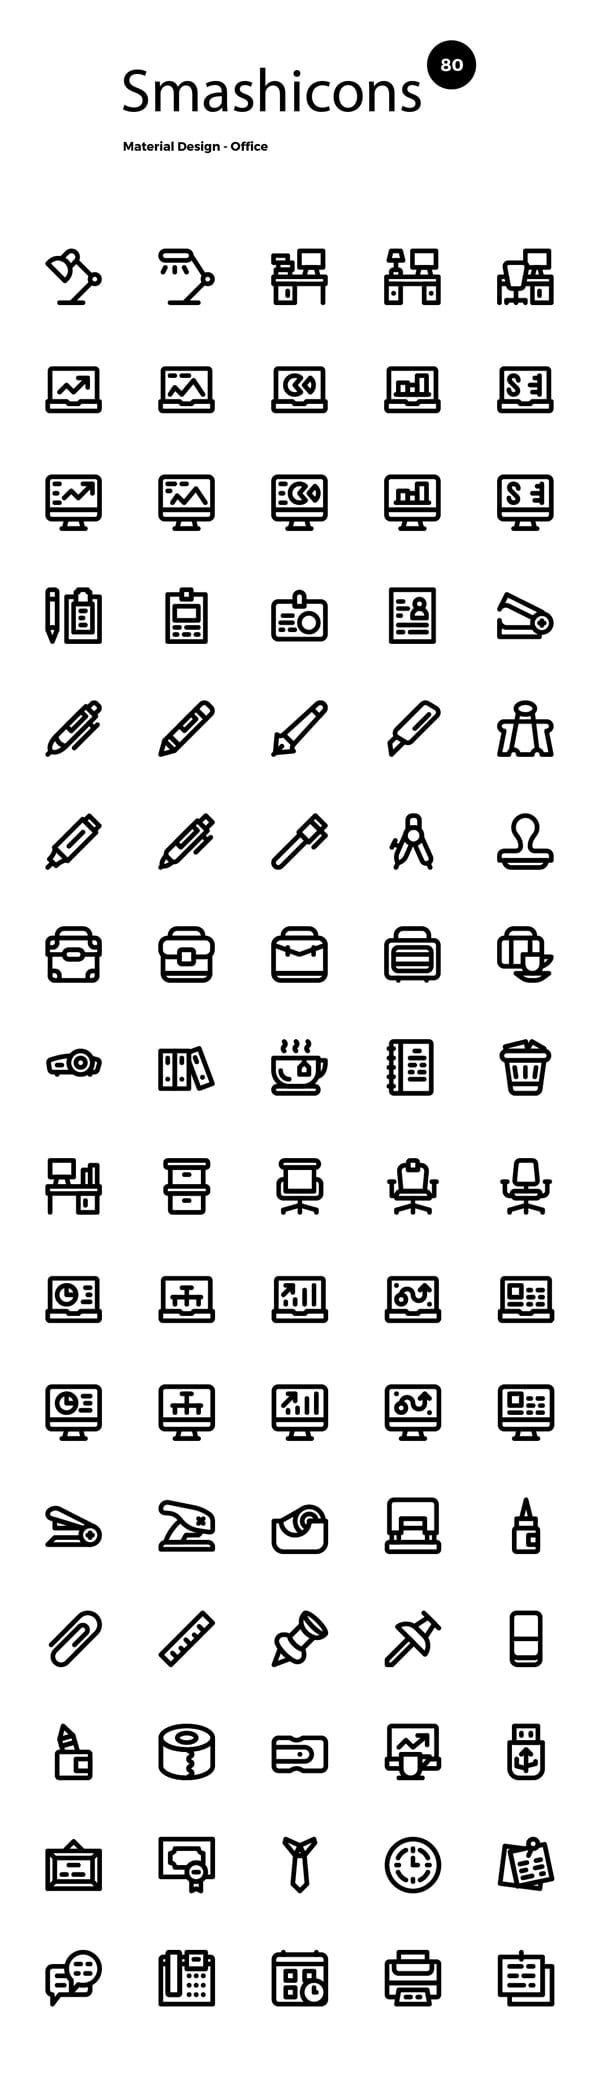 smashicons-office-600